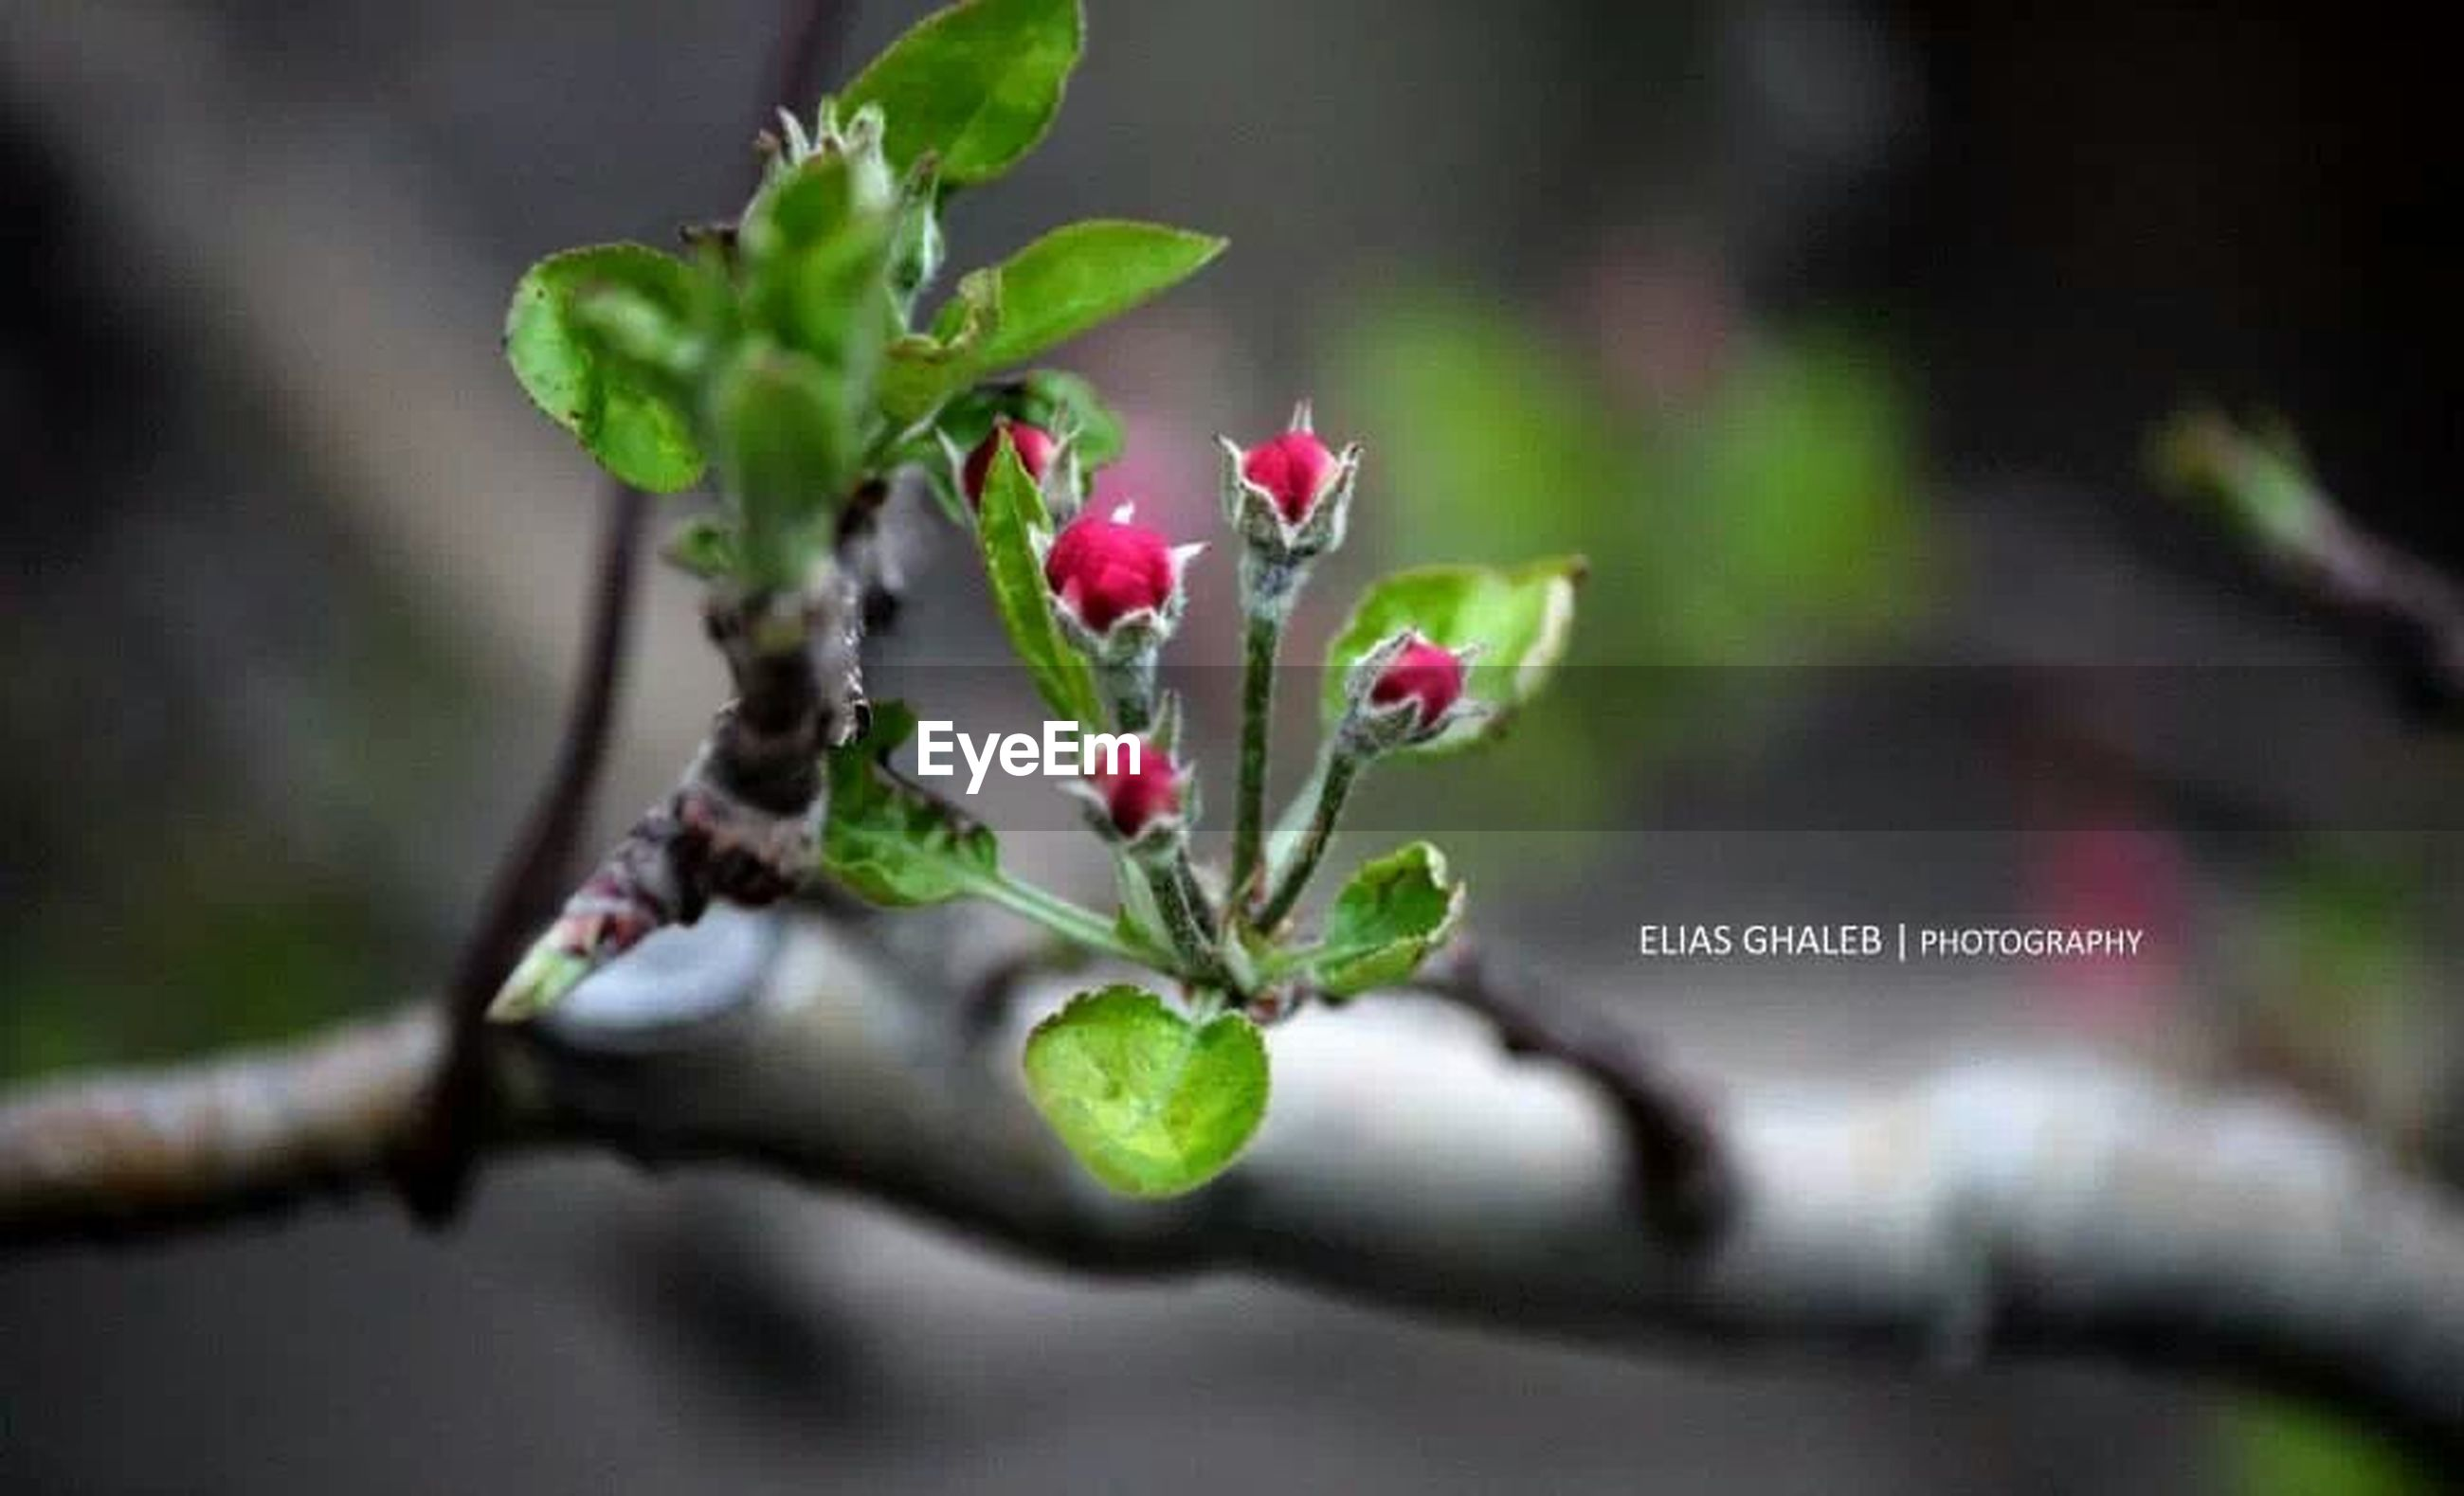 flower, growth, freshness, leaf, plant, focus on foreground, close-up, bud, fragility, nature, beauty in nature, stem, selective focus, beginnings, green color, petal, new life, twig, blossom, growing